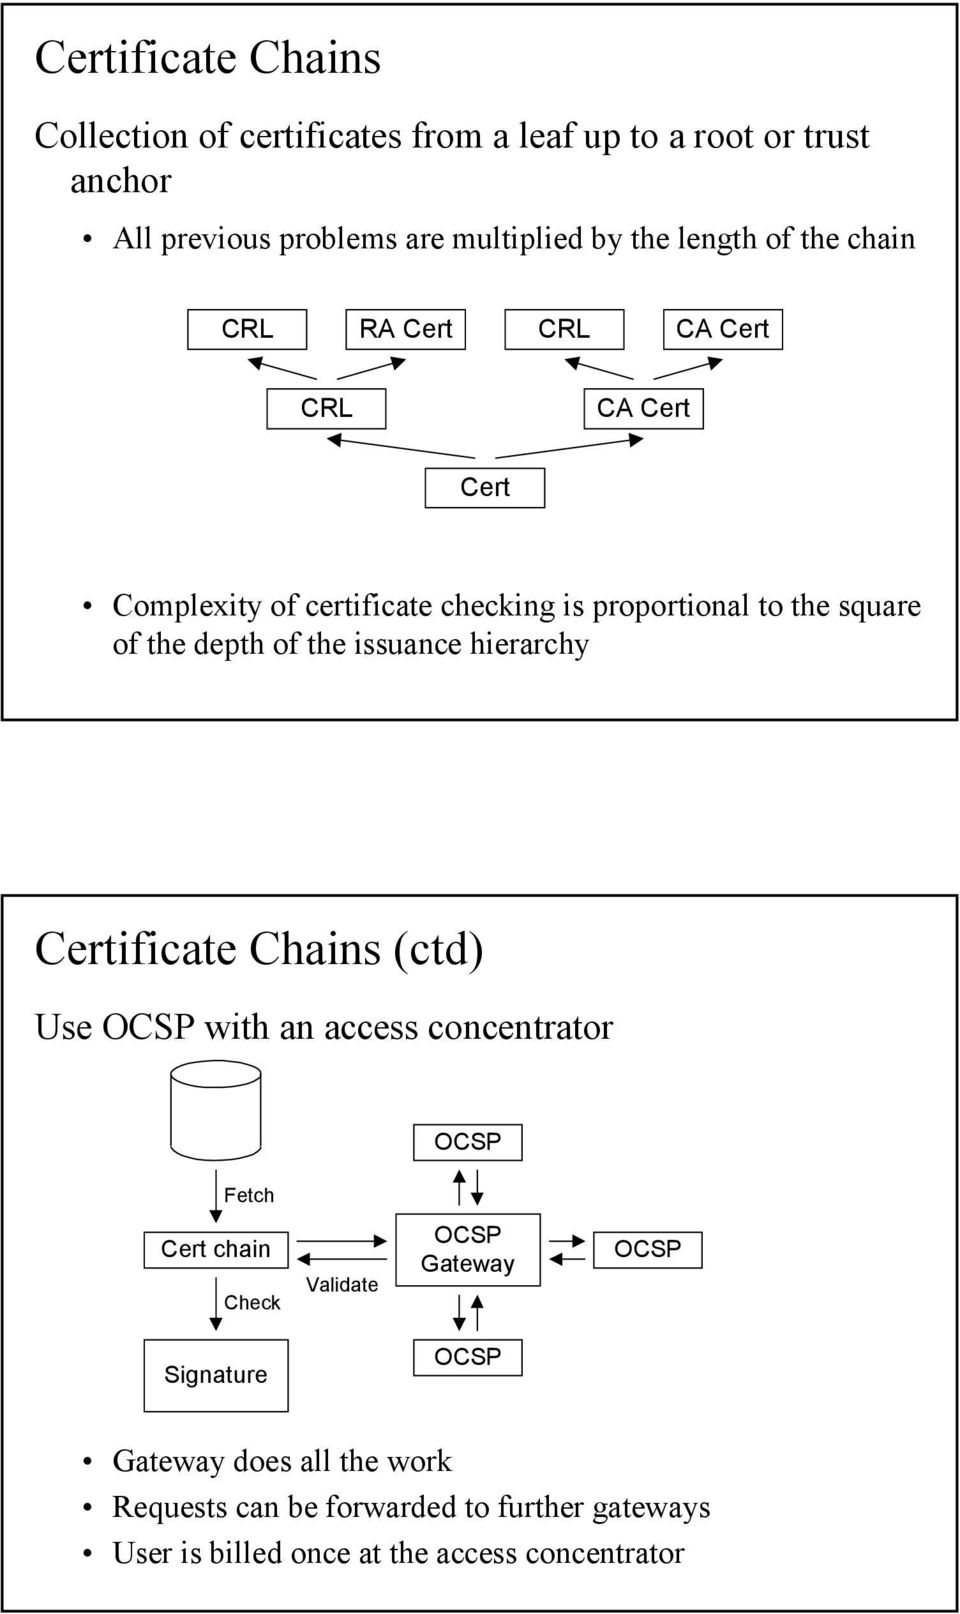 depth of the issuance hierarchy Certificate Chains (ctd) Use OCSP with an access concentrator OCSP Fetch Cert chain Check Validate OCSP